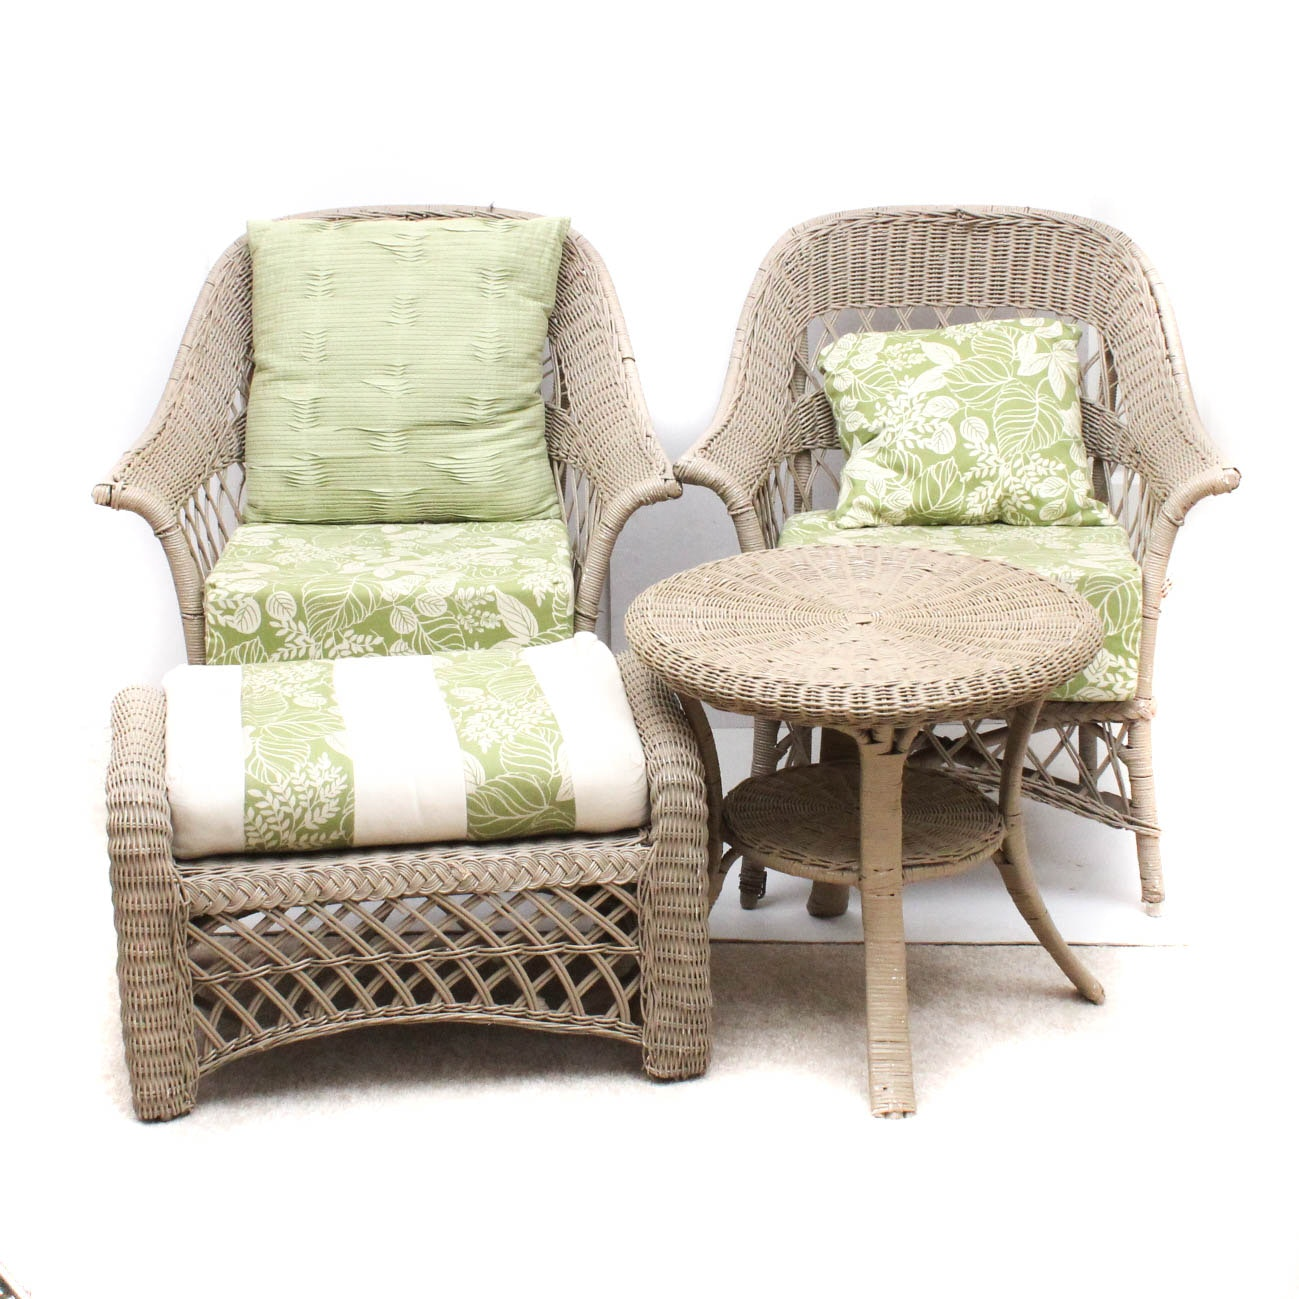 Woven Cord Patio Chairs